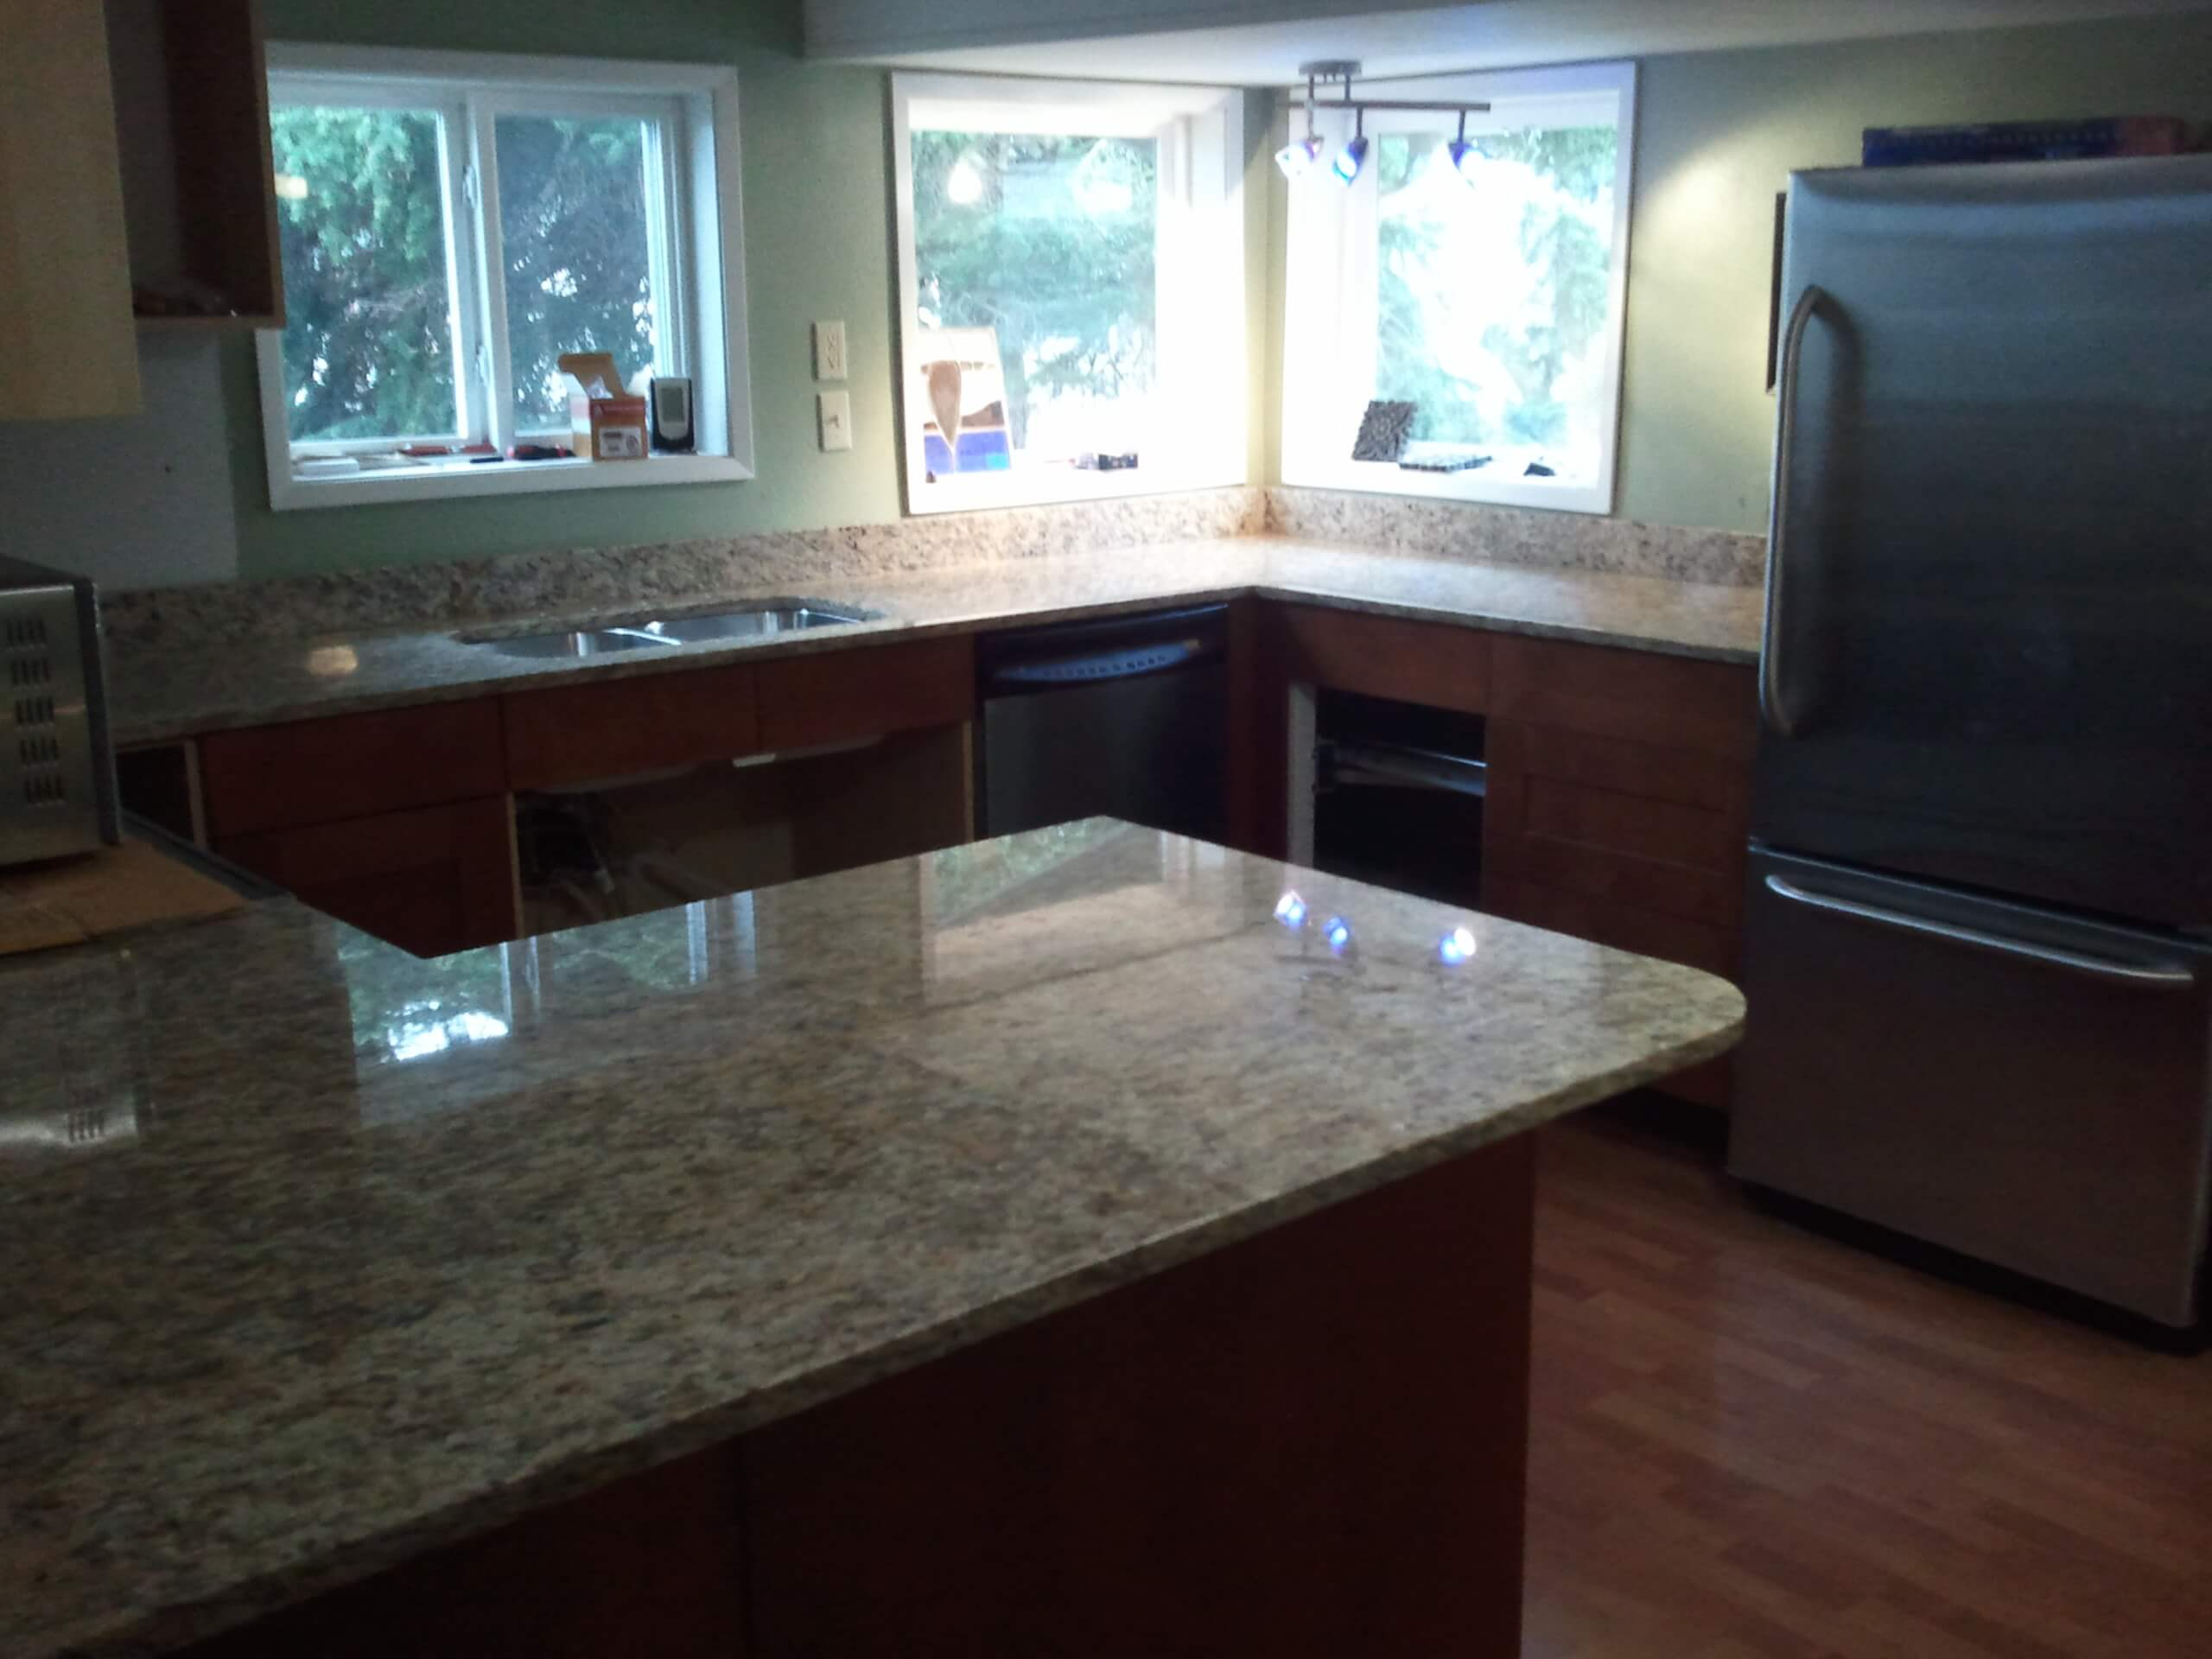 quartz st blue minneapolis paul caribbean choosing countertop farmington countertops apple valley stone